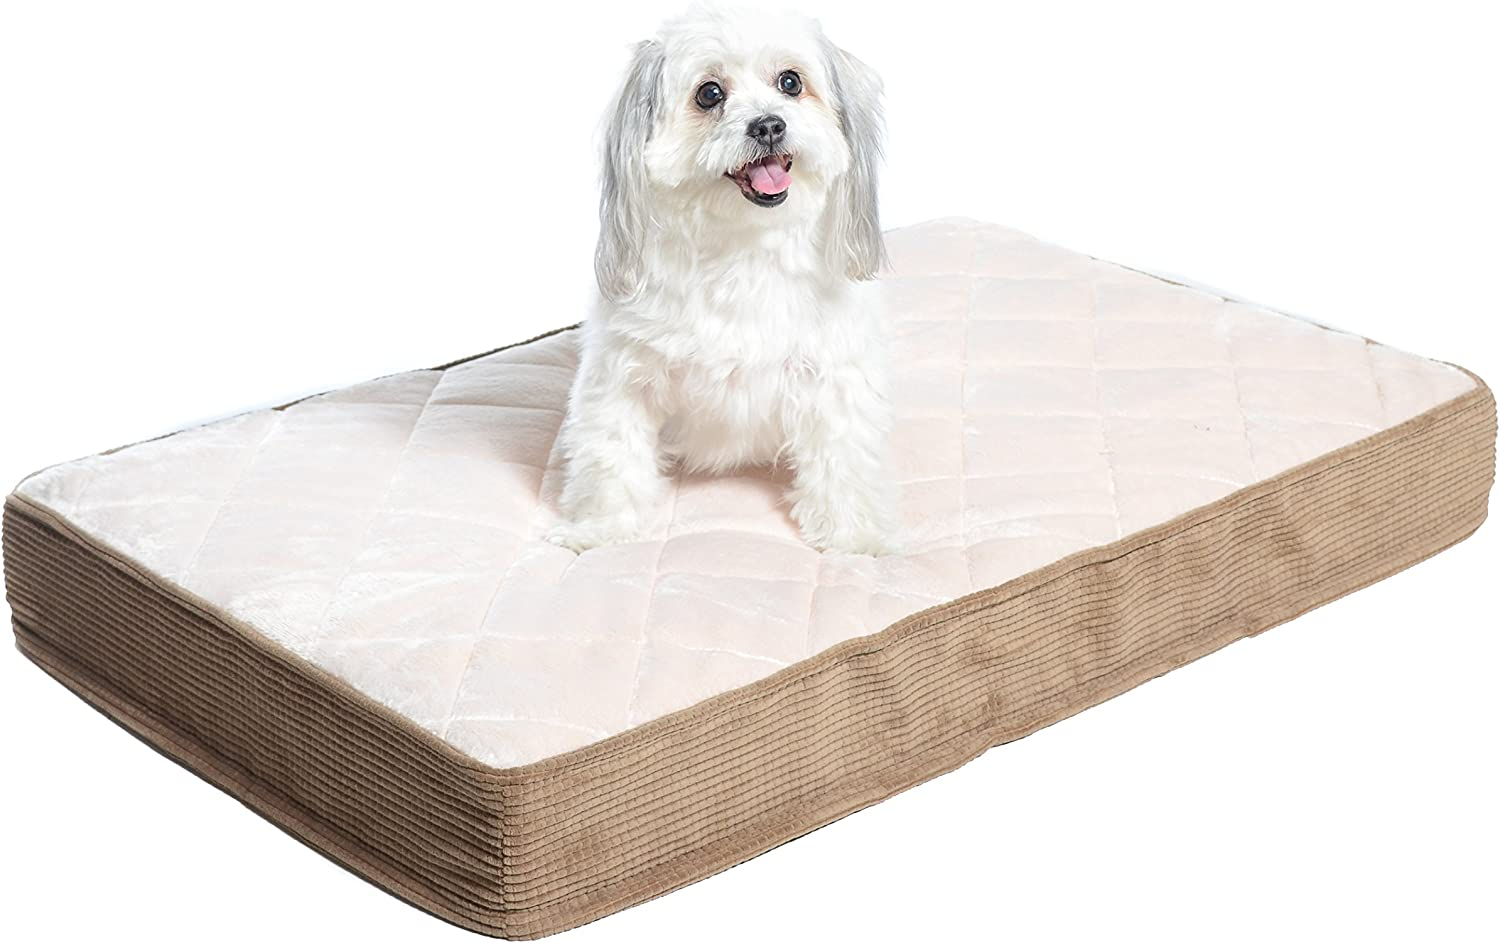 Milliard Quilted Padded Orthopedic Dog Bed, Egg Crate Foam with Plush Pillow Top Washable Cover (47 inches x 29 inhes x 4 inches) : Pet Supplies